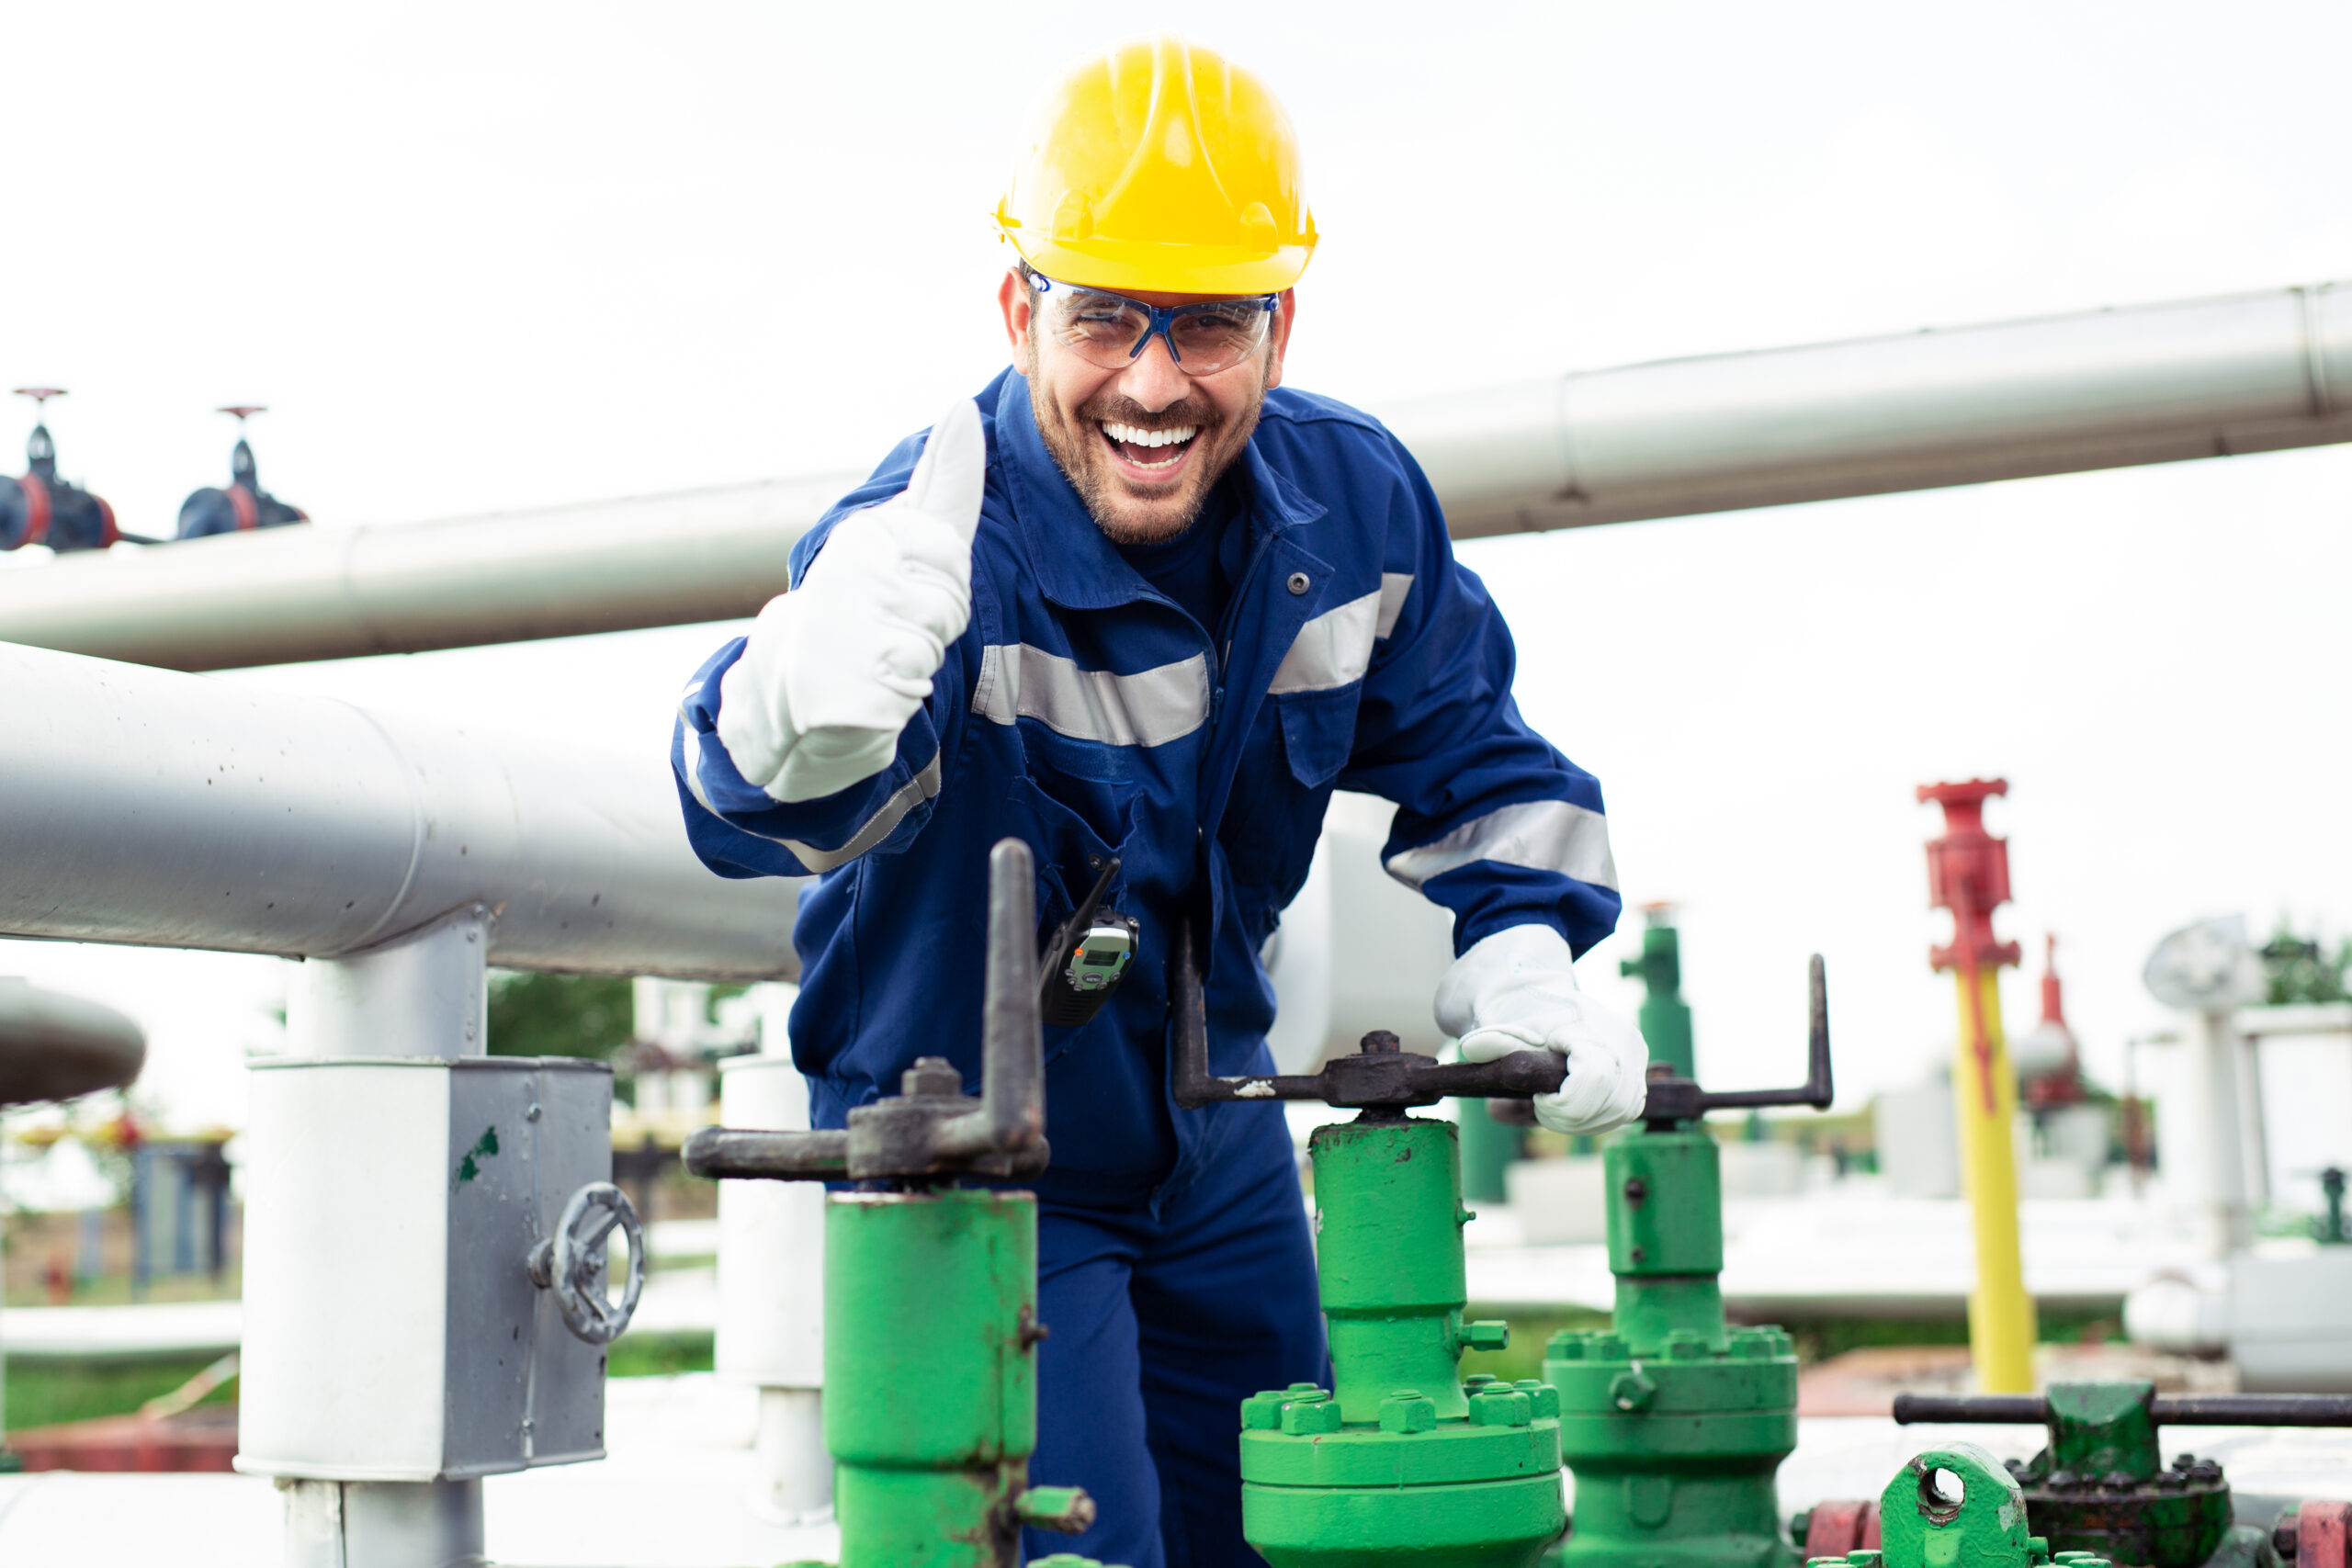 Worker closes the valve on the oil pipeline